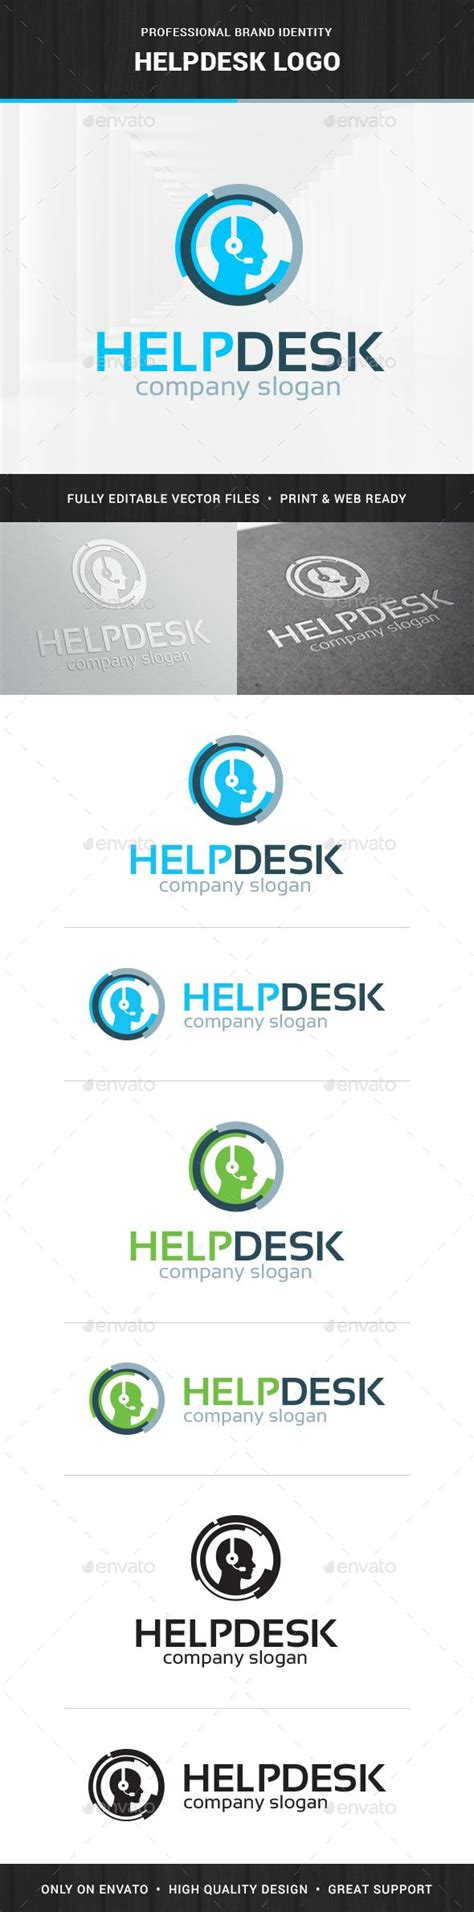 irs help desk phone number 1000 ideas about help desk on shelter dogs